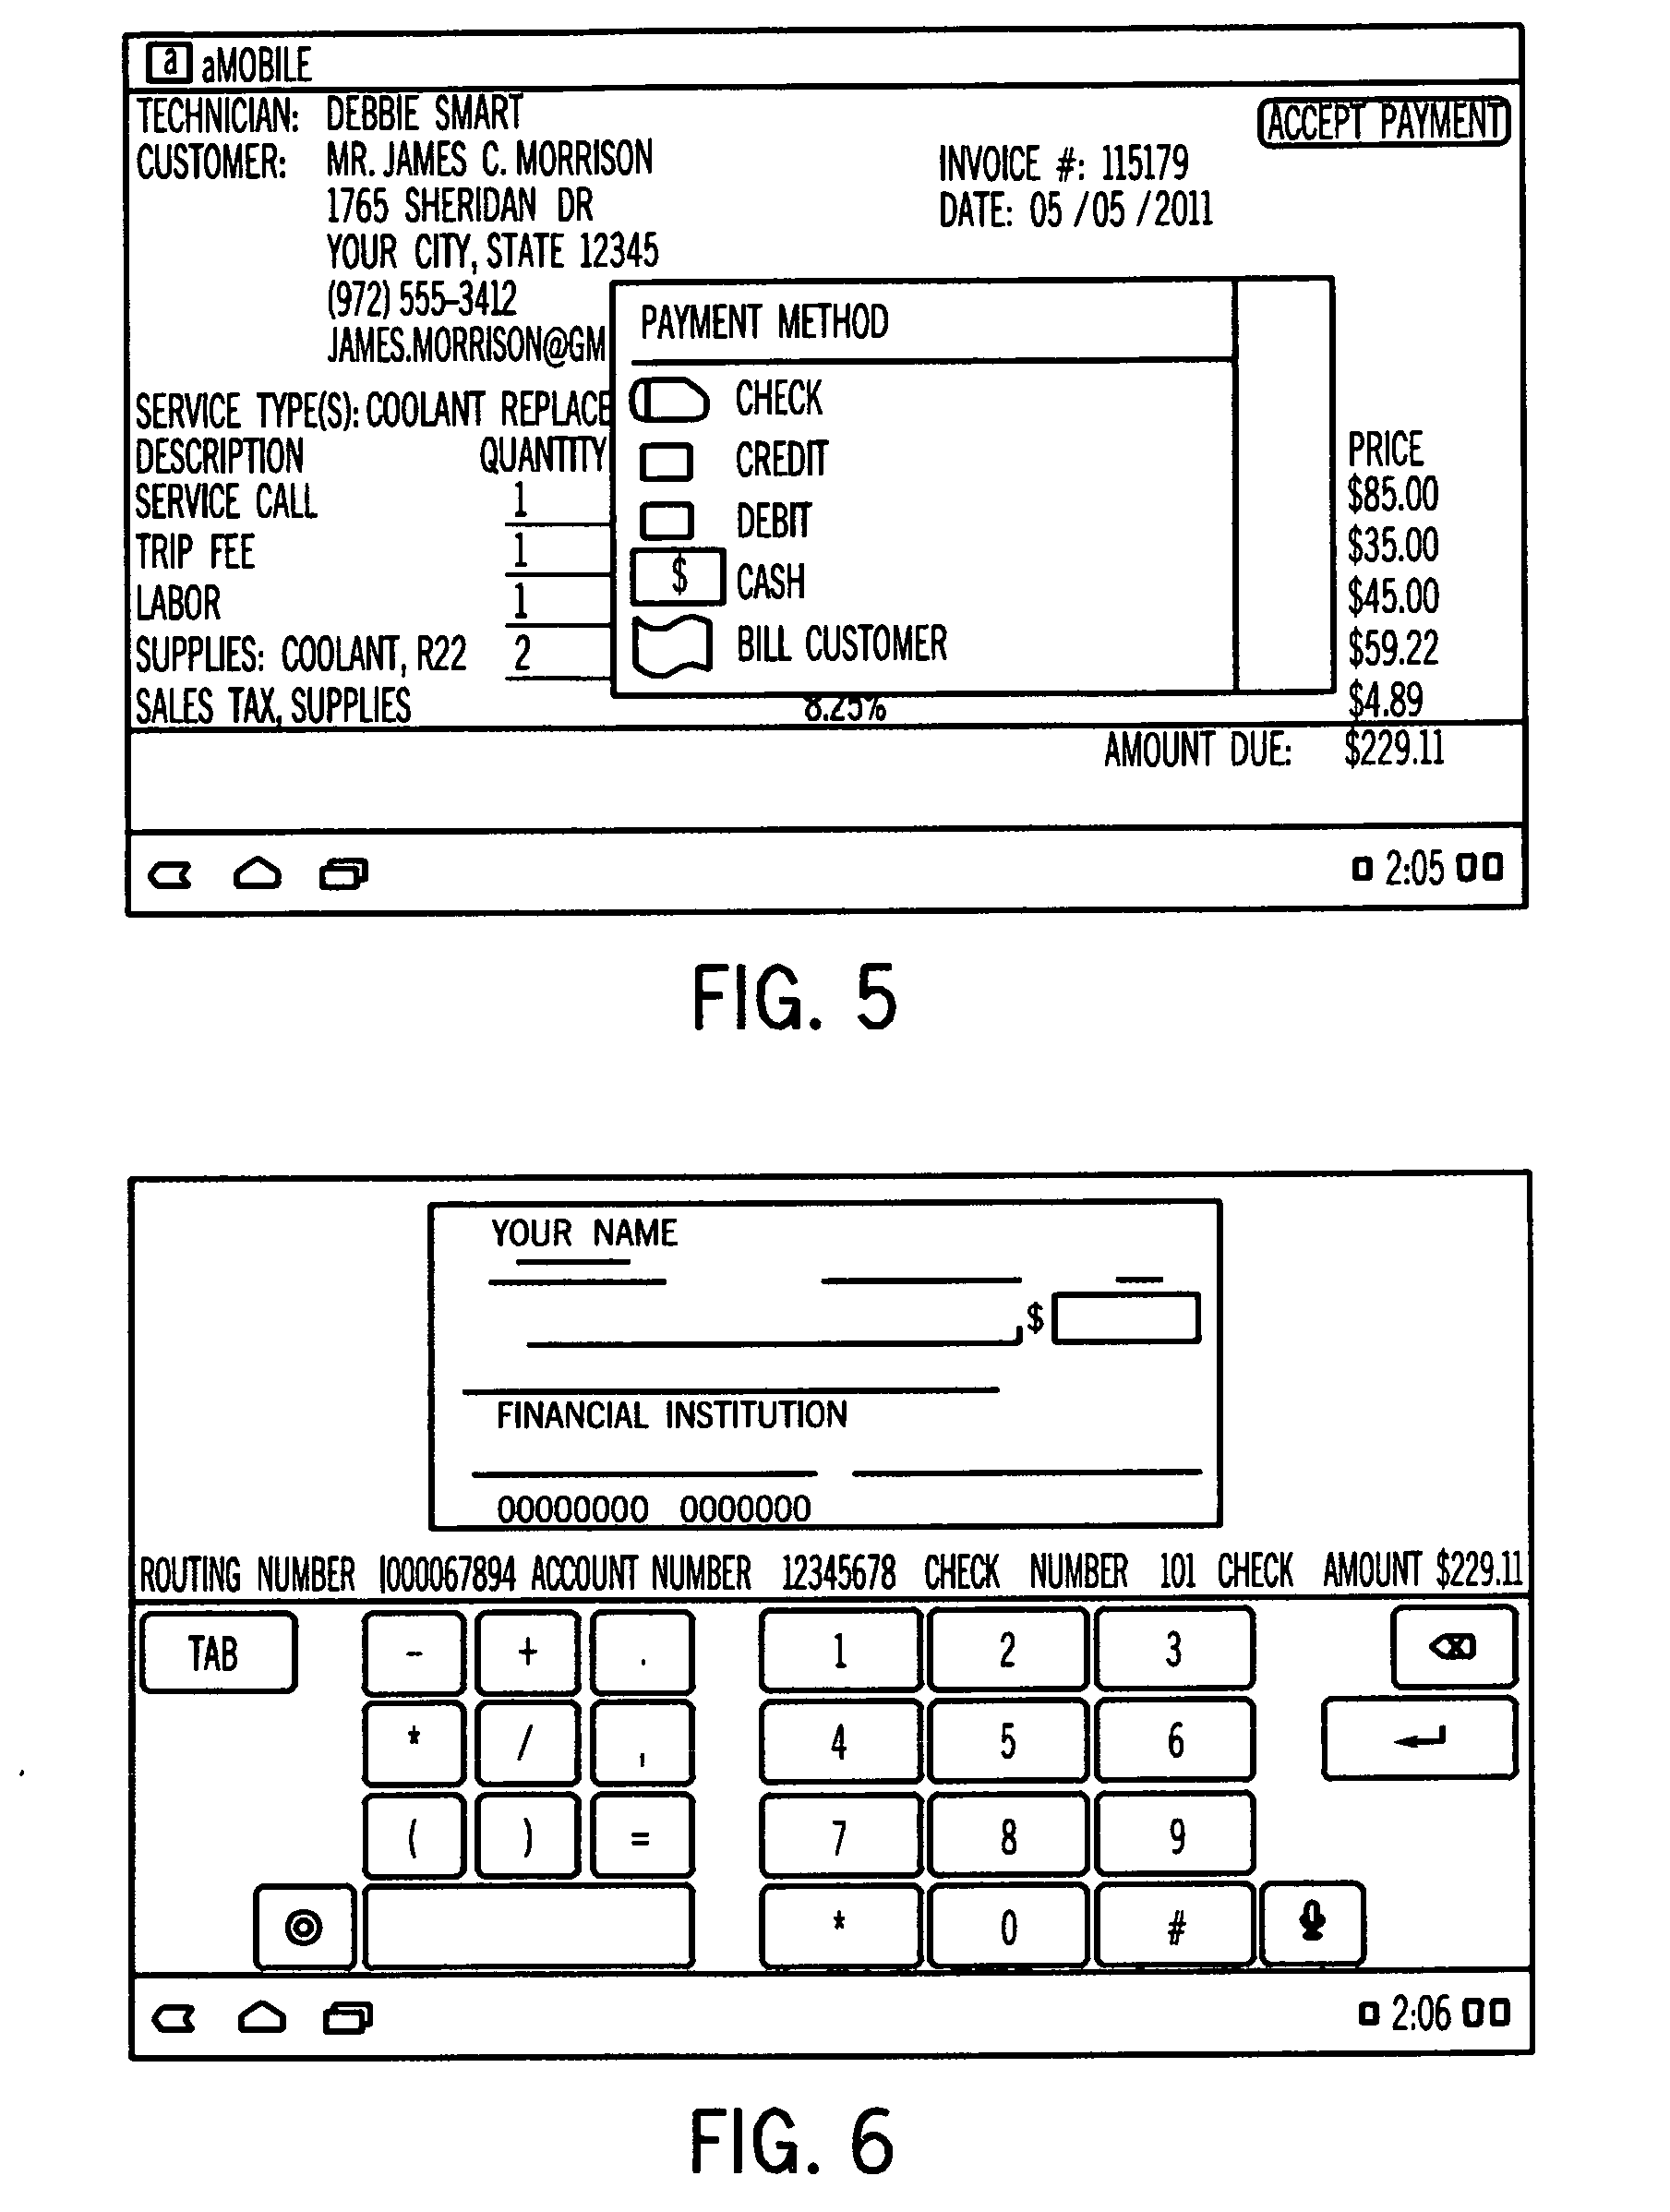 Free Printable Invoice Forms Word Patent Us  Remote Invoice And Negotiable Instrument  Snappy Invoice System Pdf with Invoice Dates Word Patent Drawing Invoice Template Doc Free Word